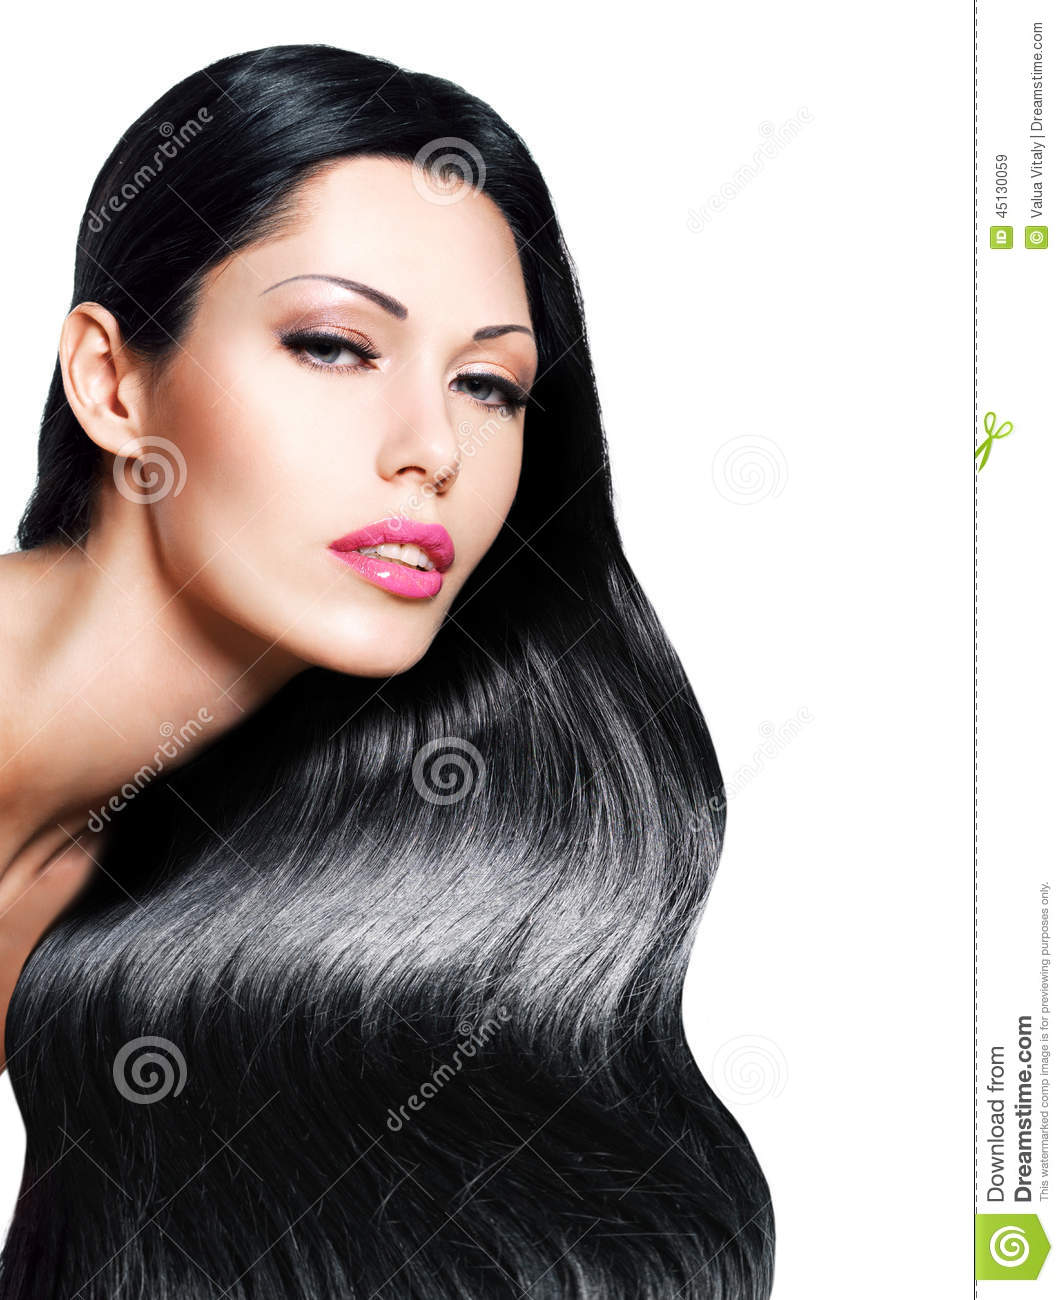 Black Women Fashion Models: Beautiful Woman With Long Black Hair Stock Image